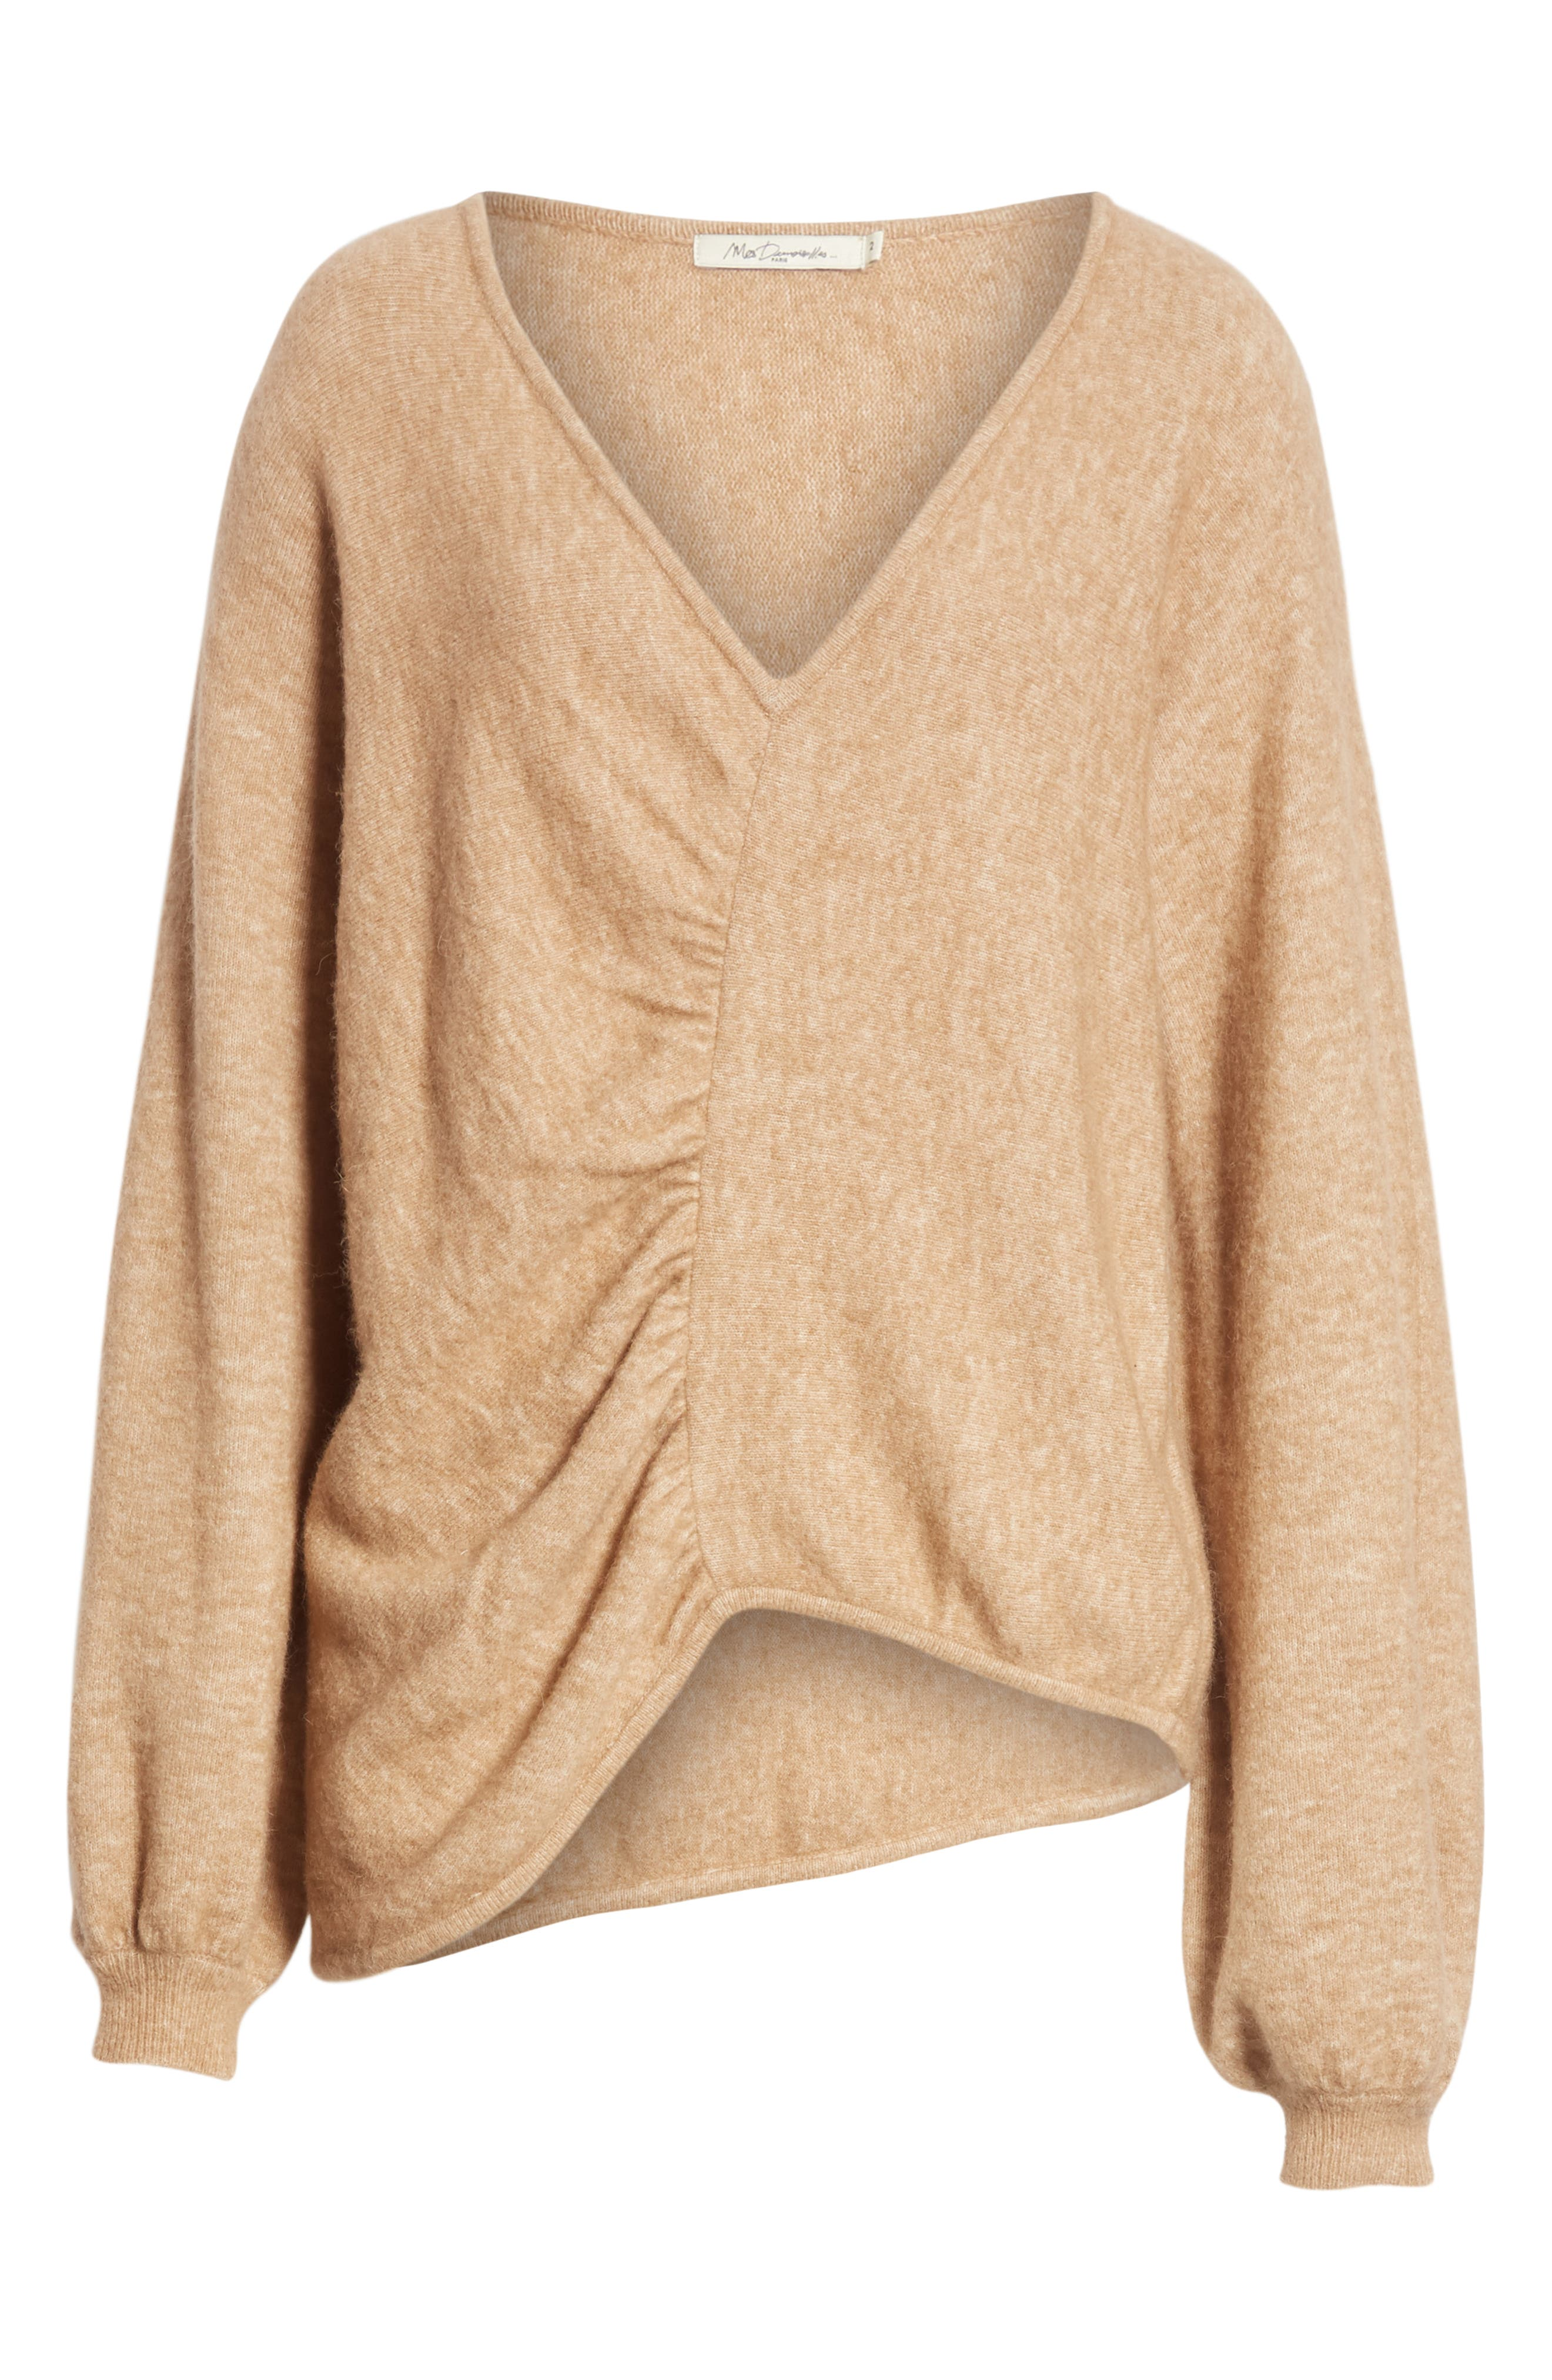 Meridien Sweater,                             Alternate thumbnail 6, color,                             CAMEL